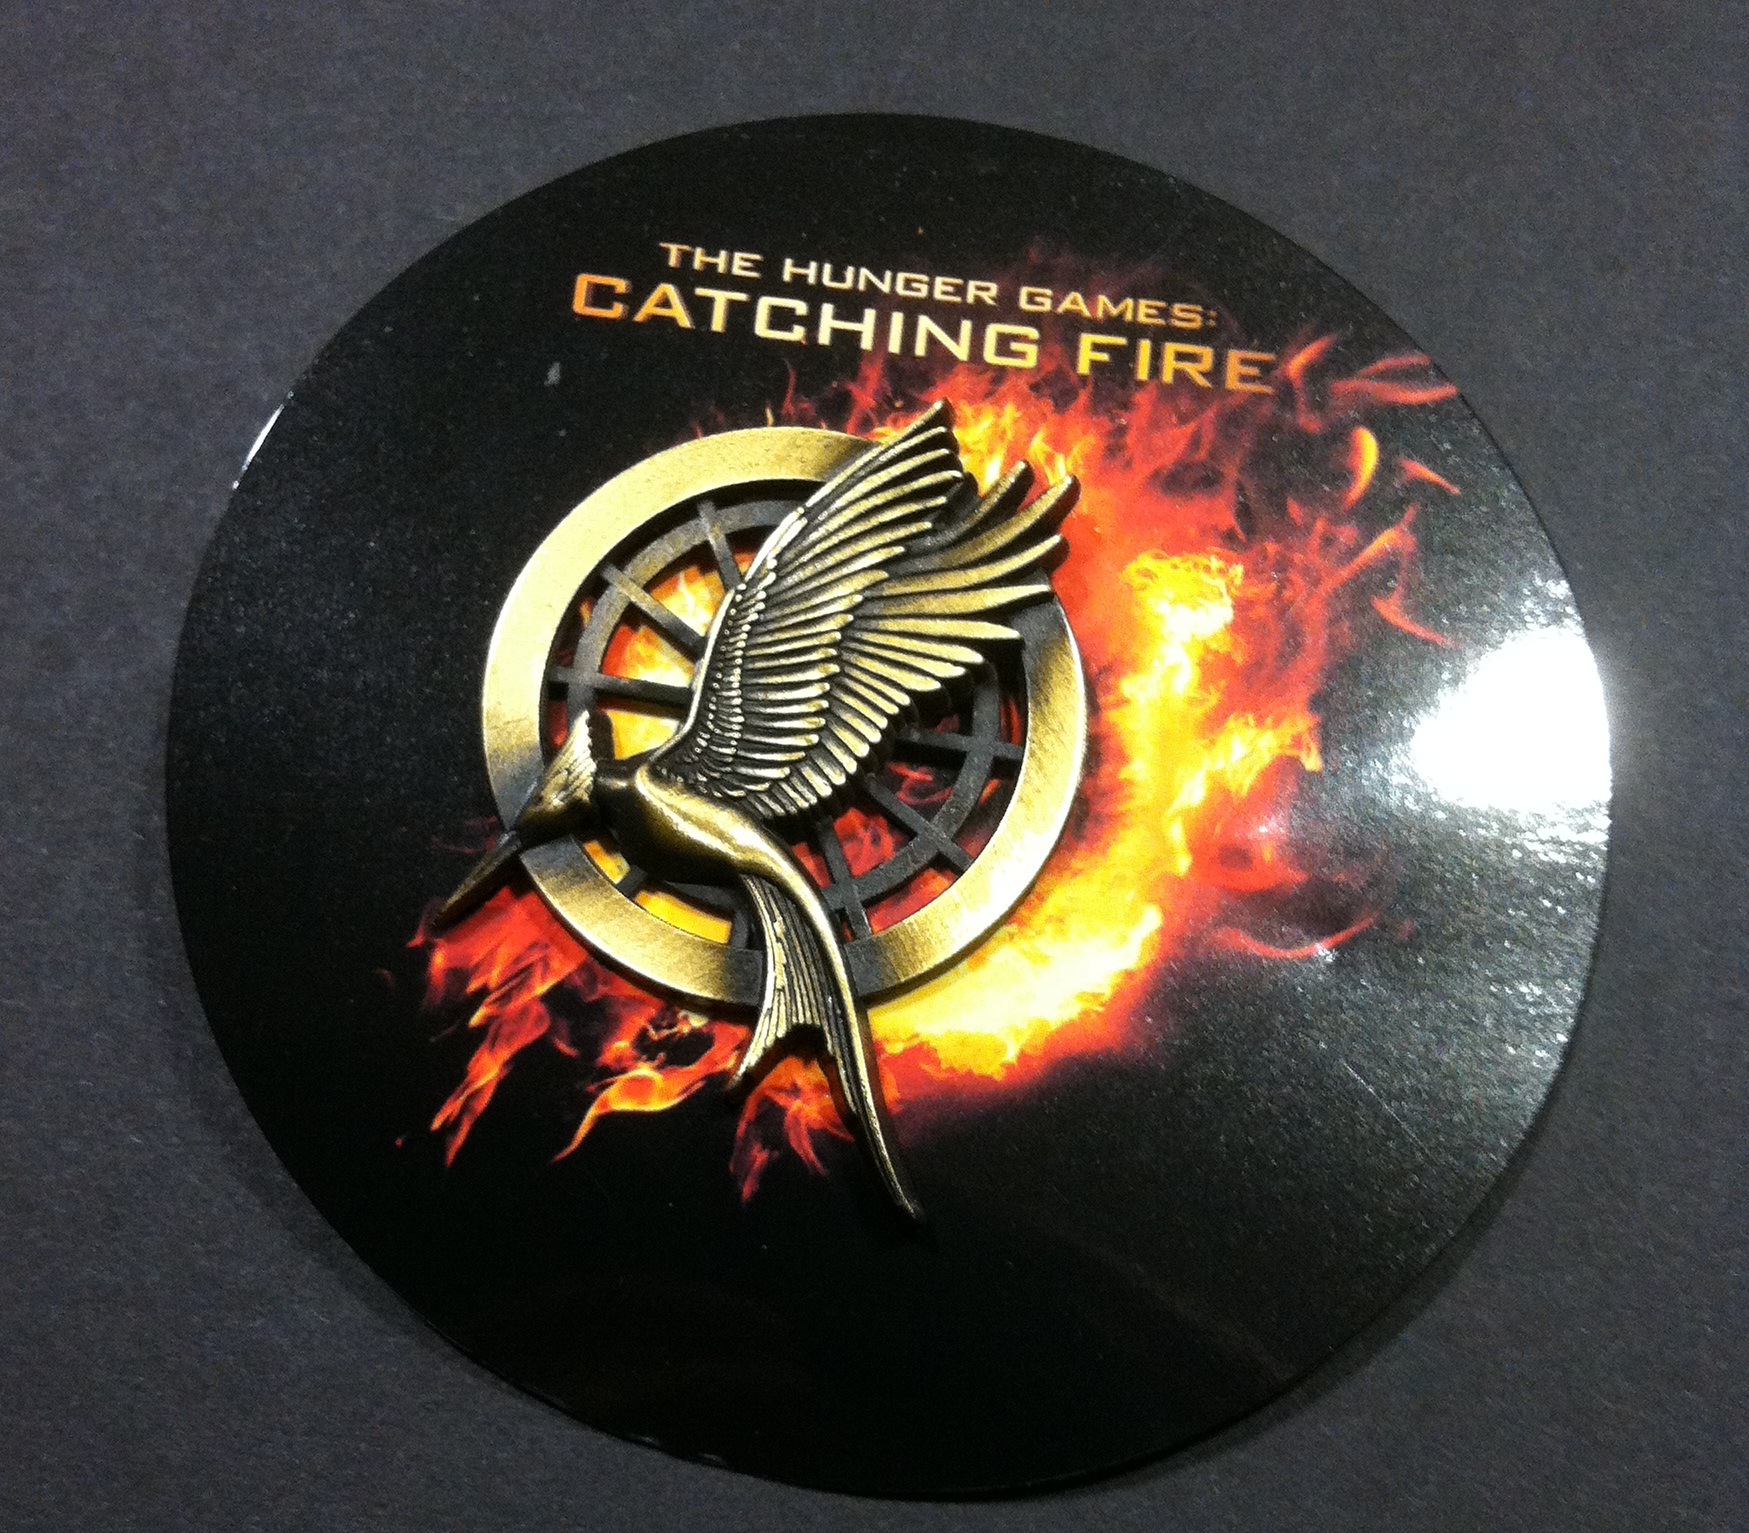 THE HUNGER GAMES: CATCHING FIRE Opening Week Contest!